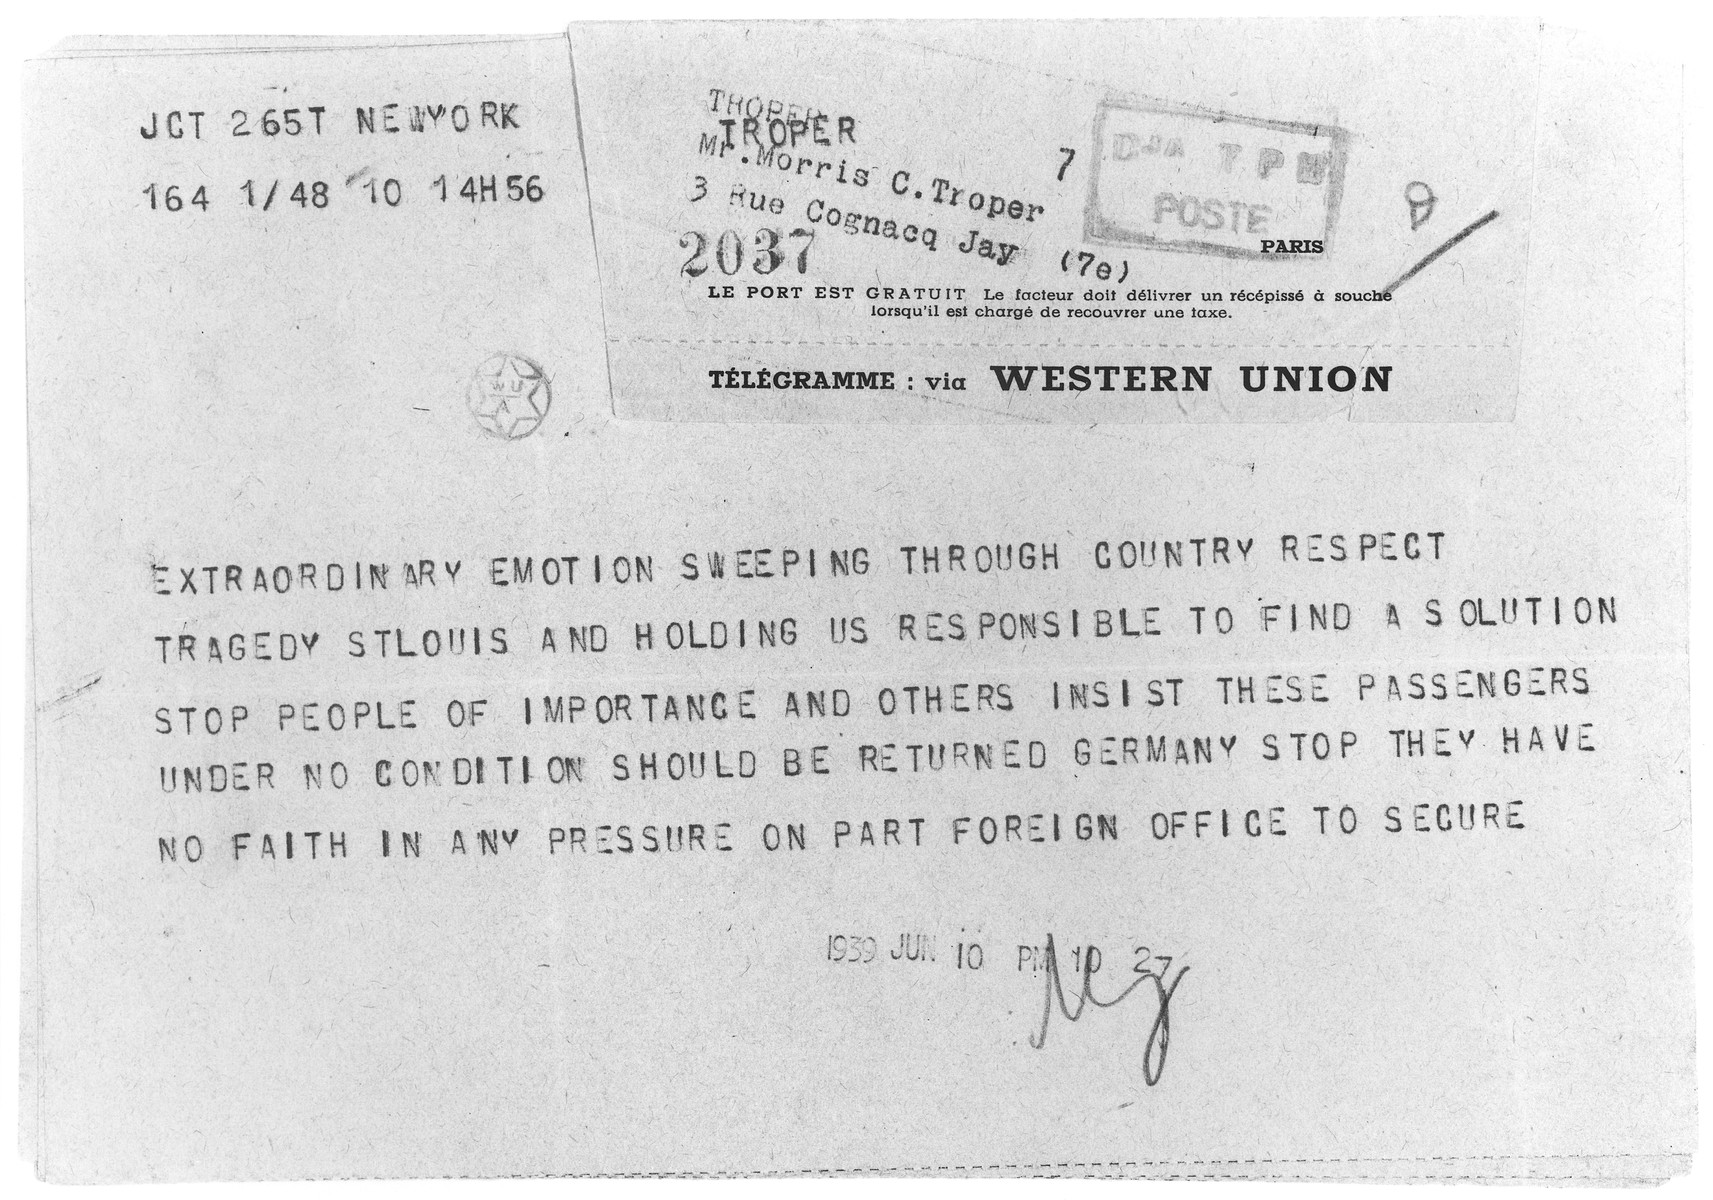 Telegram from JDC headquarters in New York to JDC European Director Morris Troper in Paris, informing him that emotions are running high in the U.S. about the fate of the MS St. Louis passengers; that people of influence insist that these refugees not be returned to Germany; and that the JDC is being held responsible for finding a solution to the crisis.